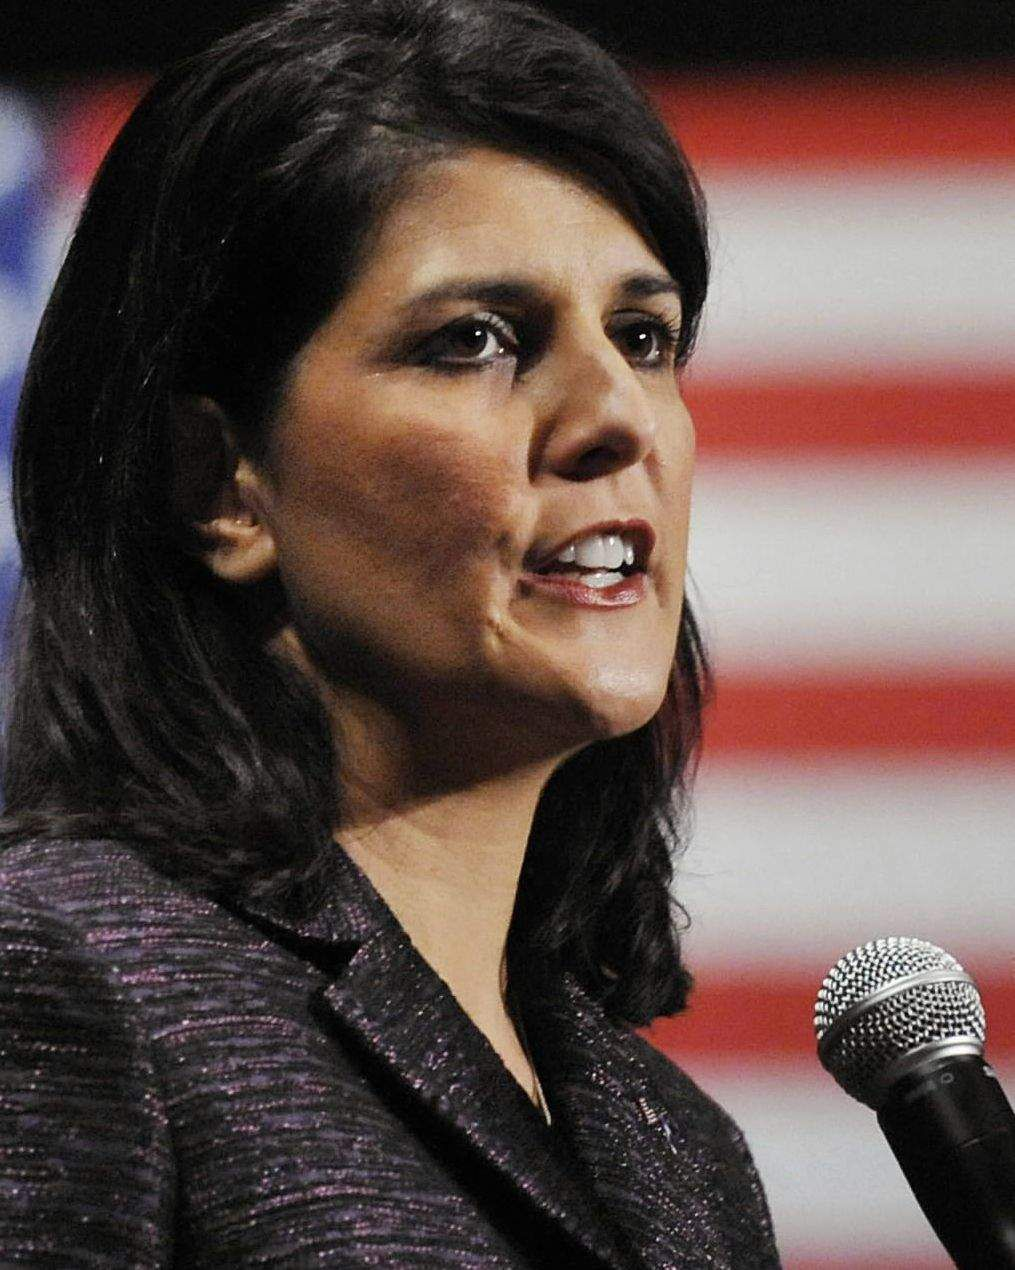 Charleston women disagree with Haley's comments on contraception Schlafly: Contraception not controversial